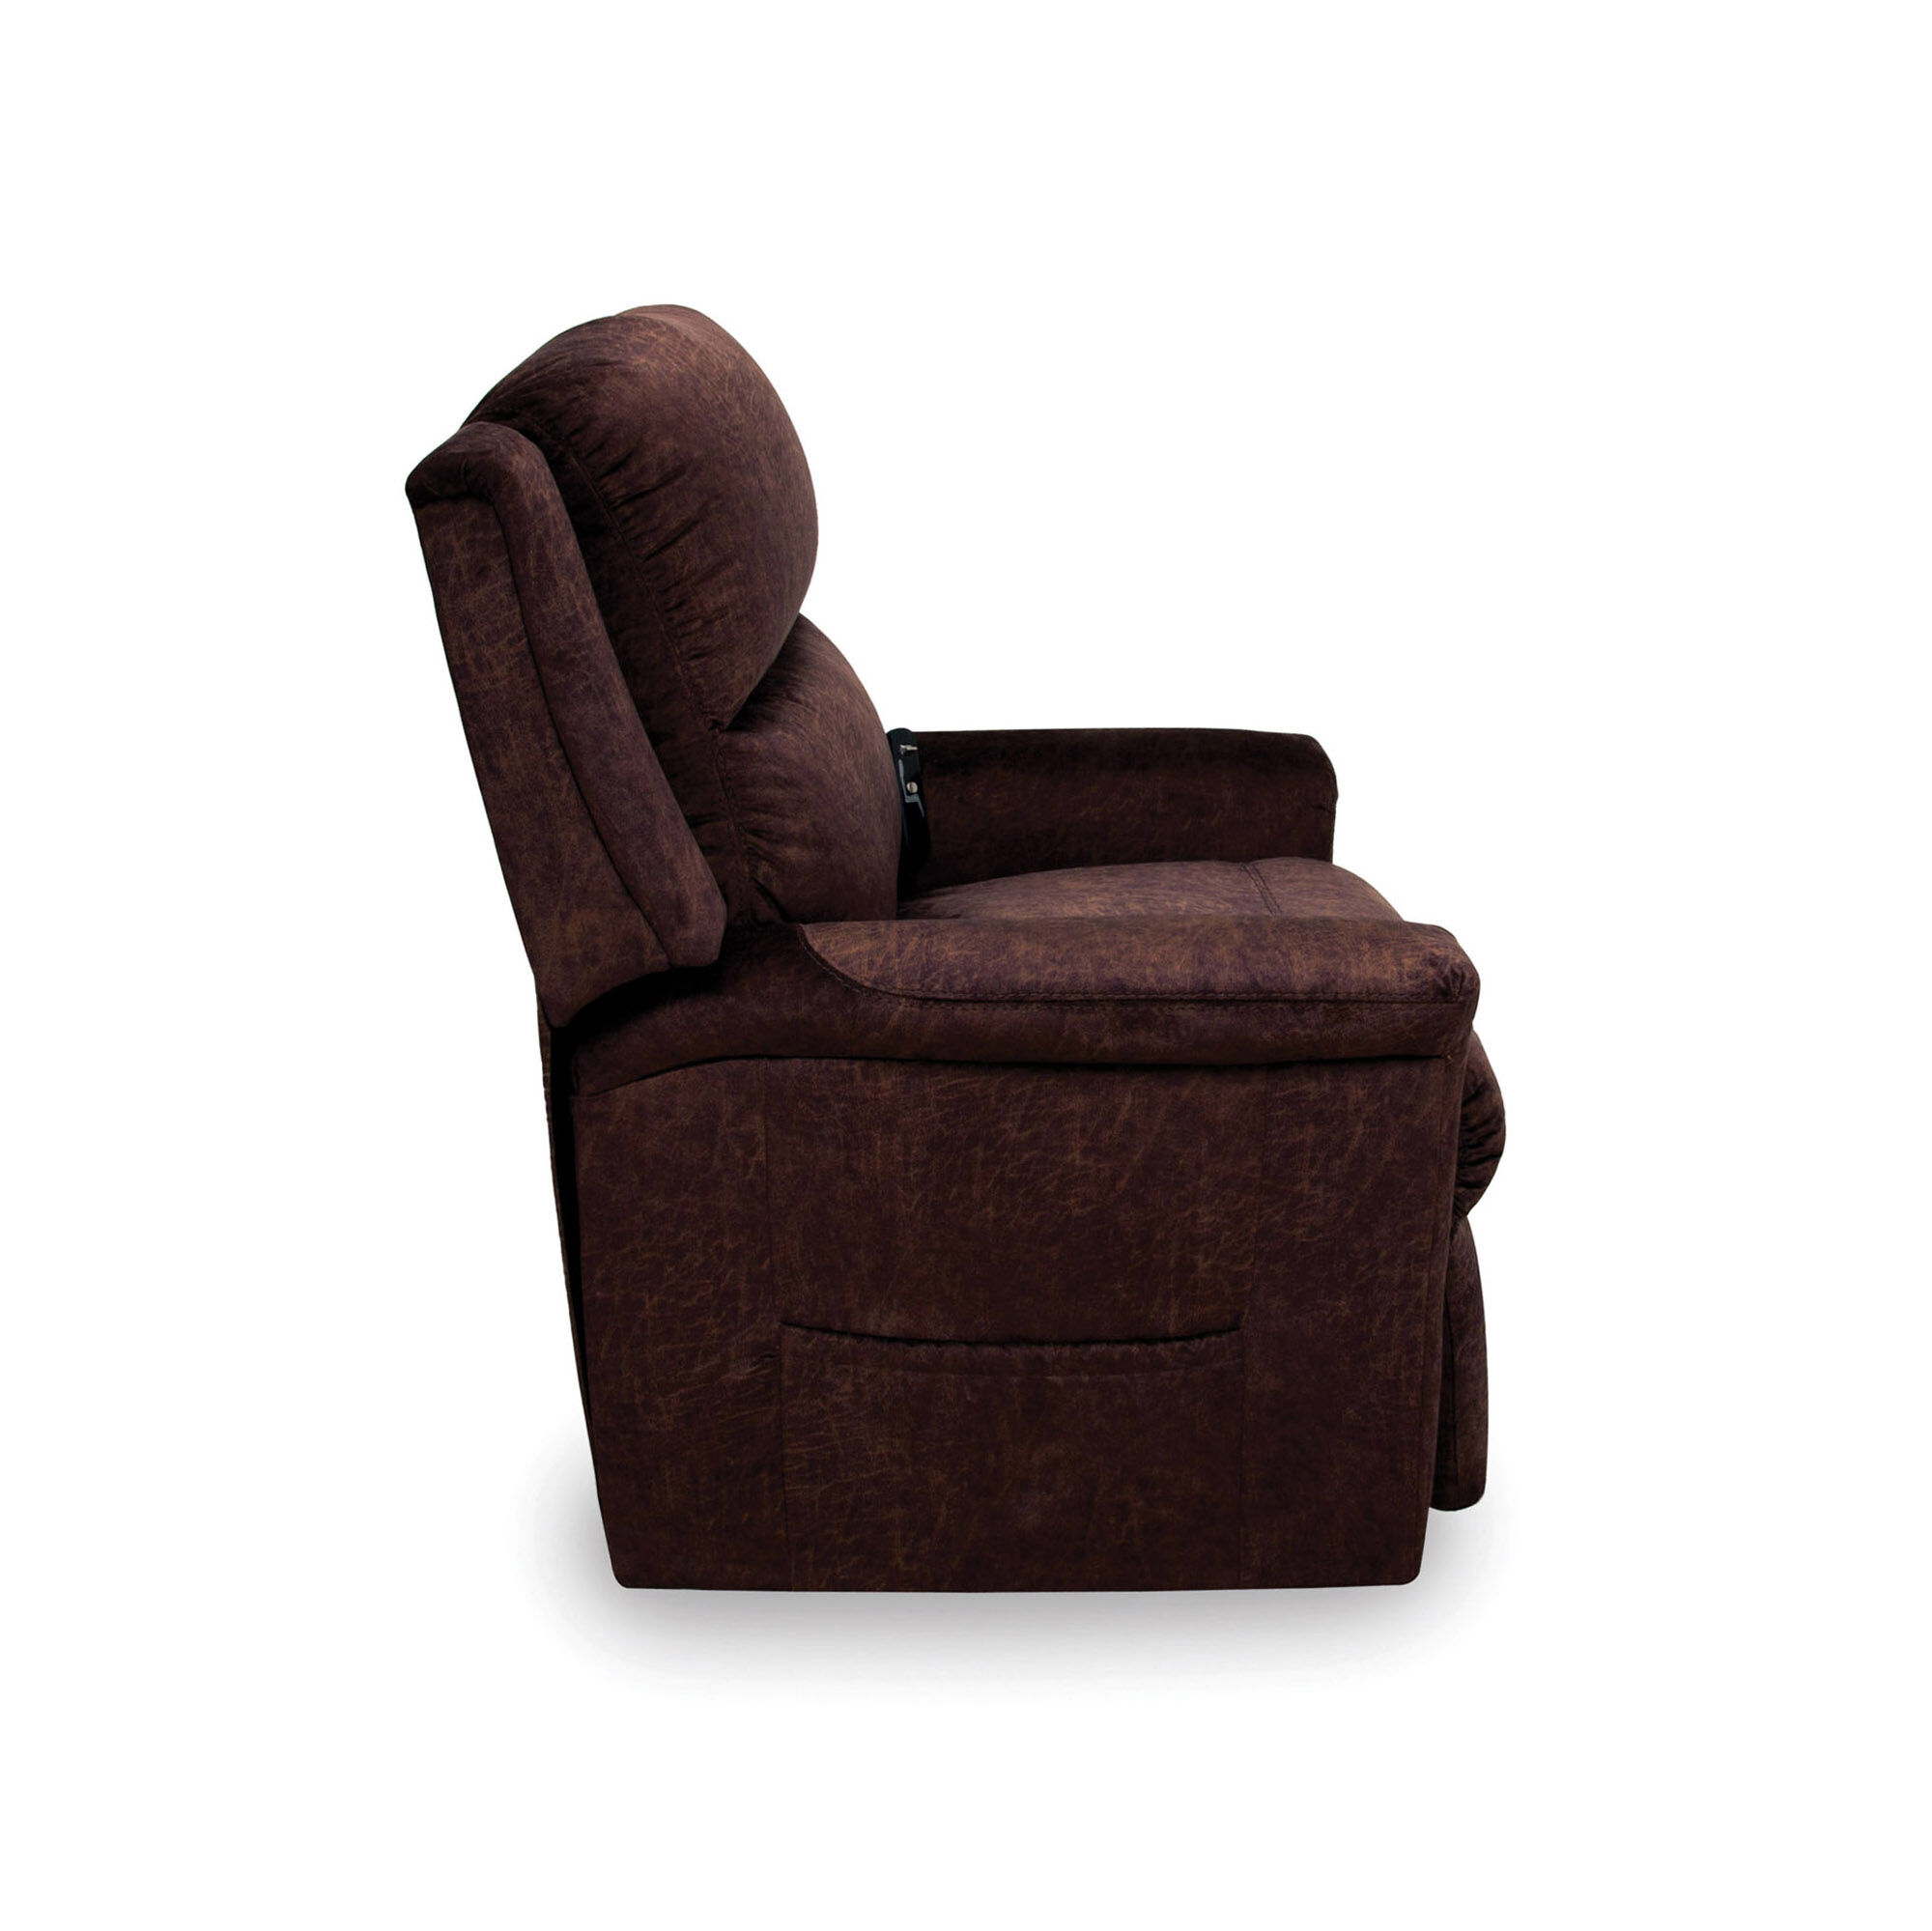 heavy duty lift chair canada decorative dining room covers power recliner